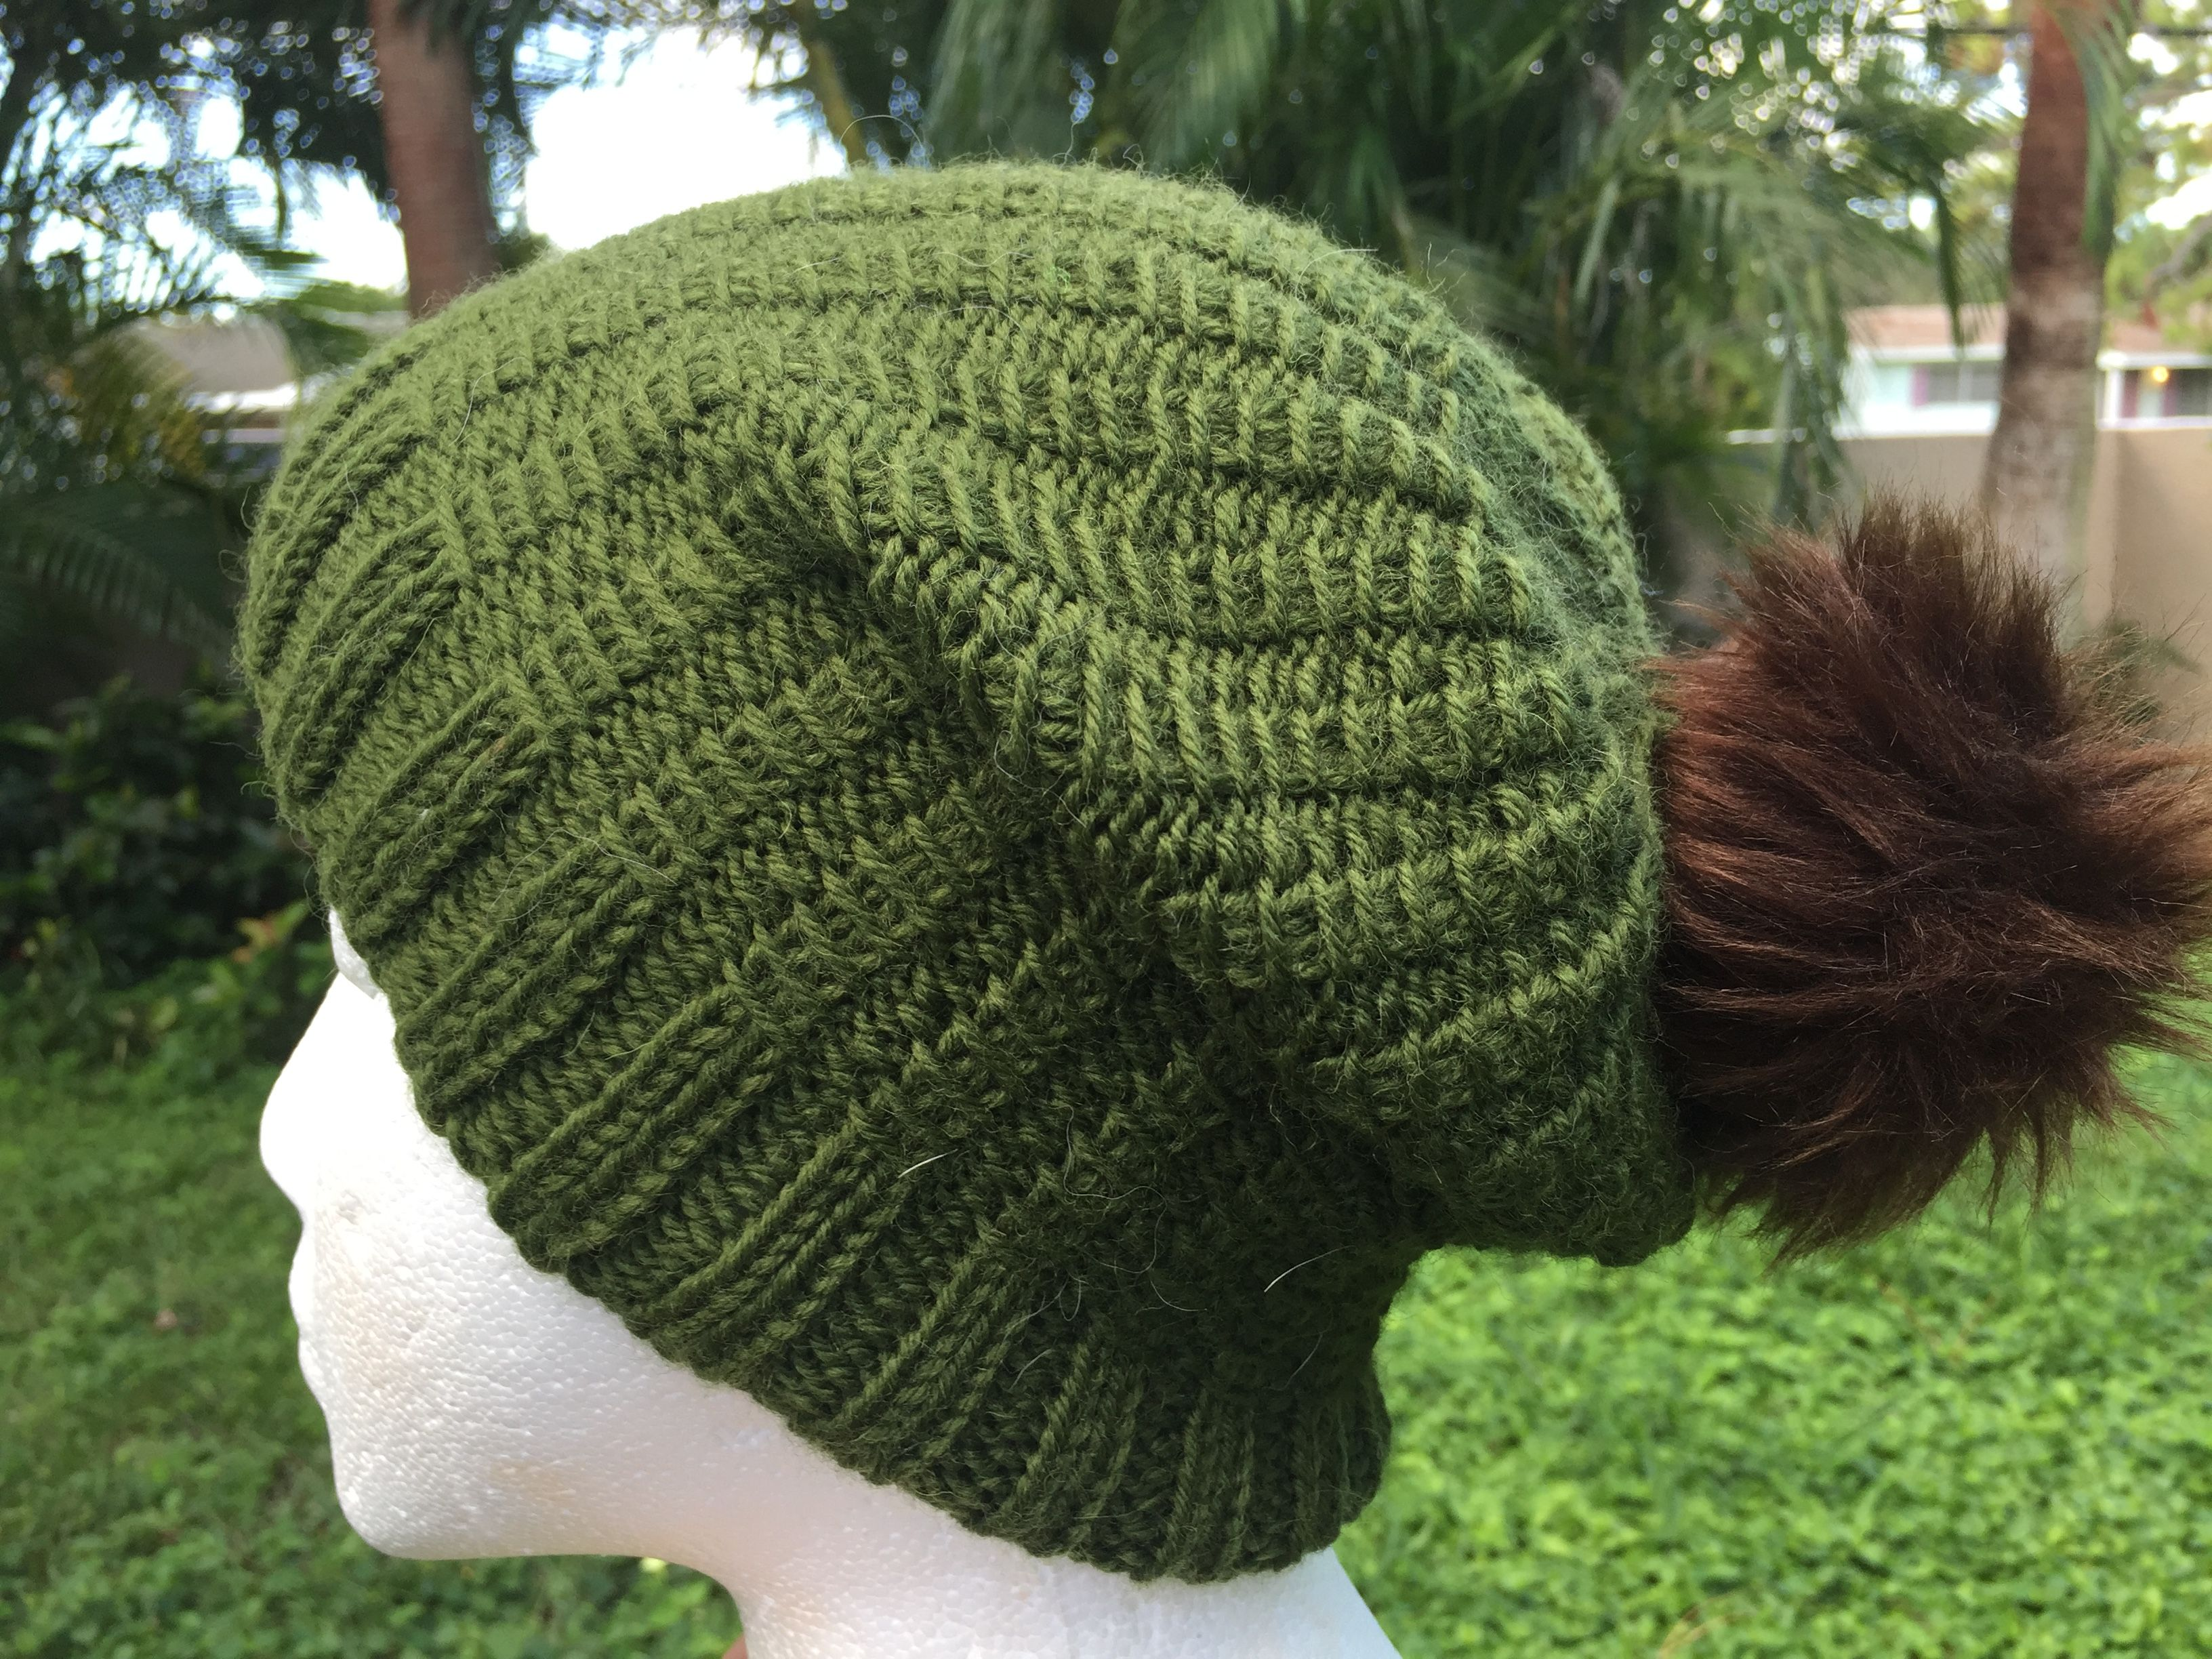 Green Hand knit beanie hat with pom pom on manequin | Hats | Pinterest